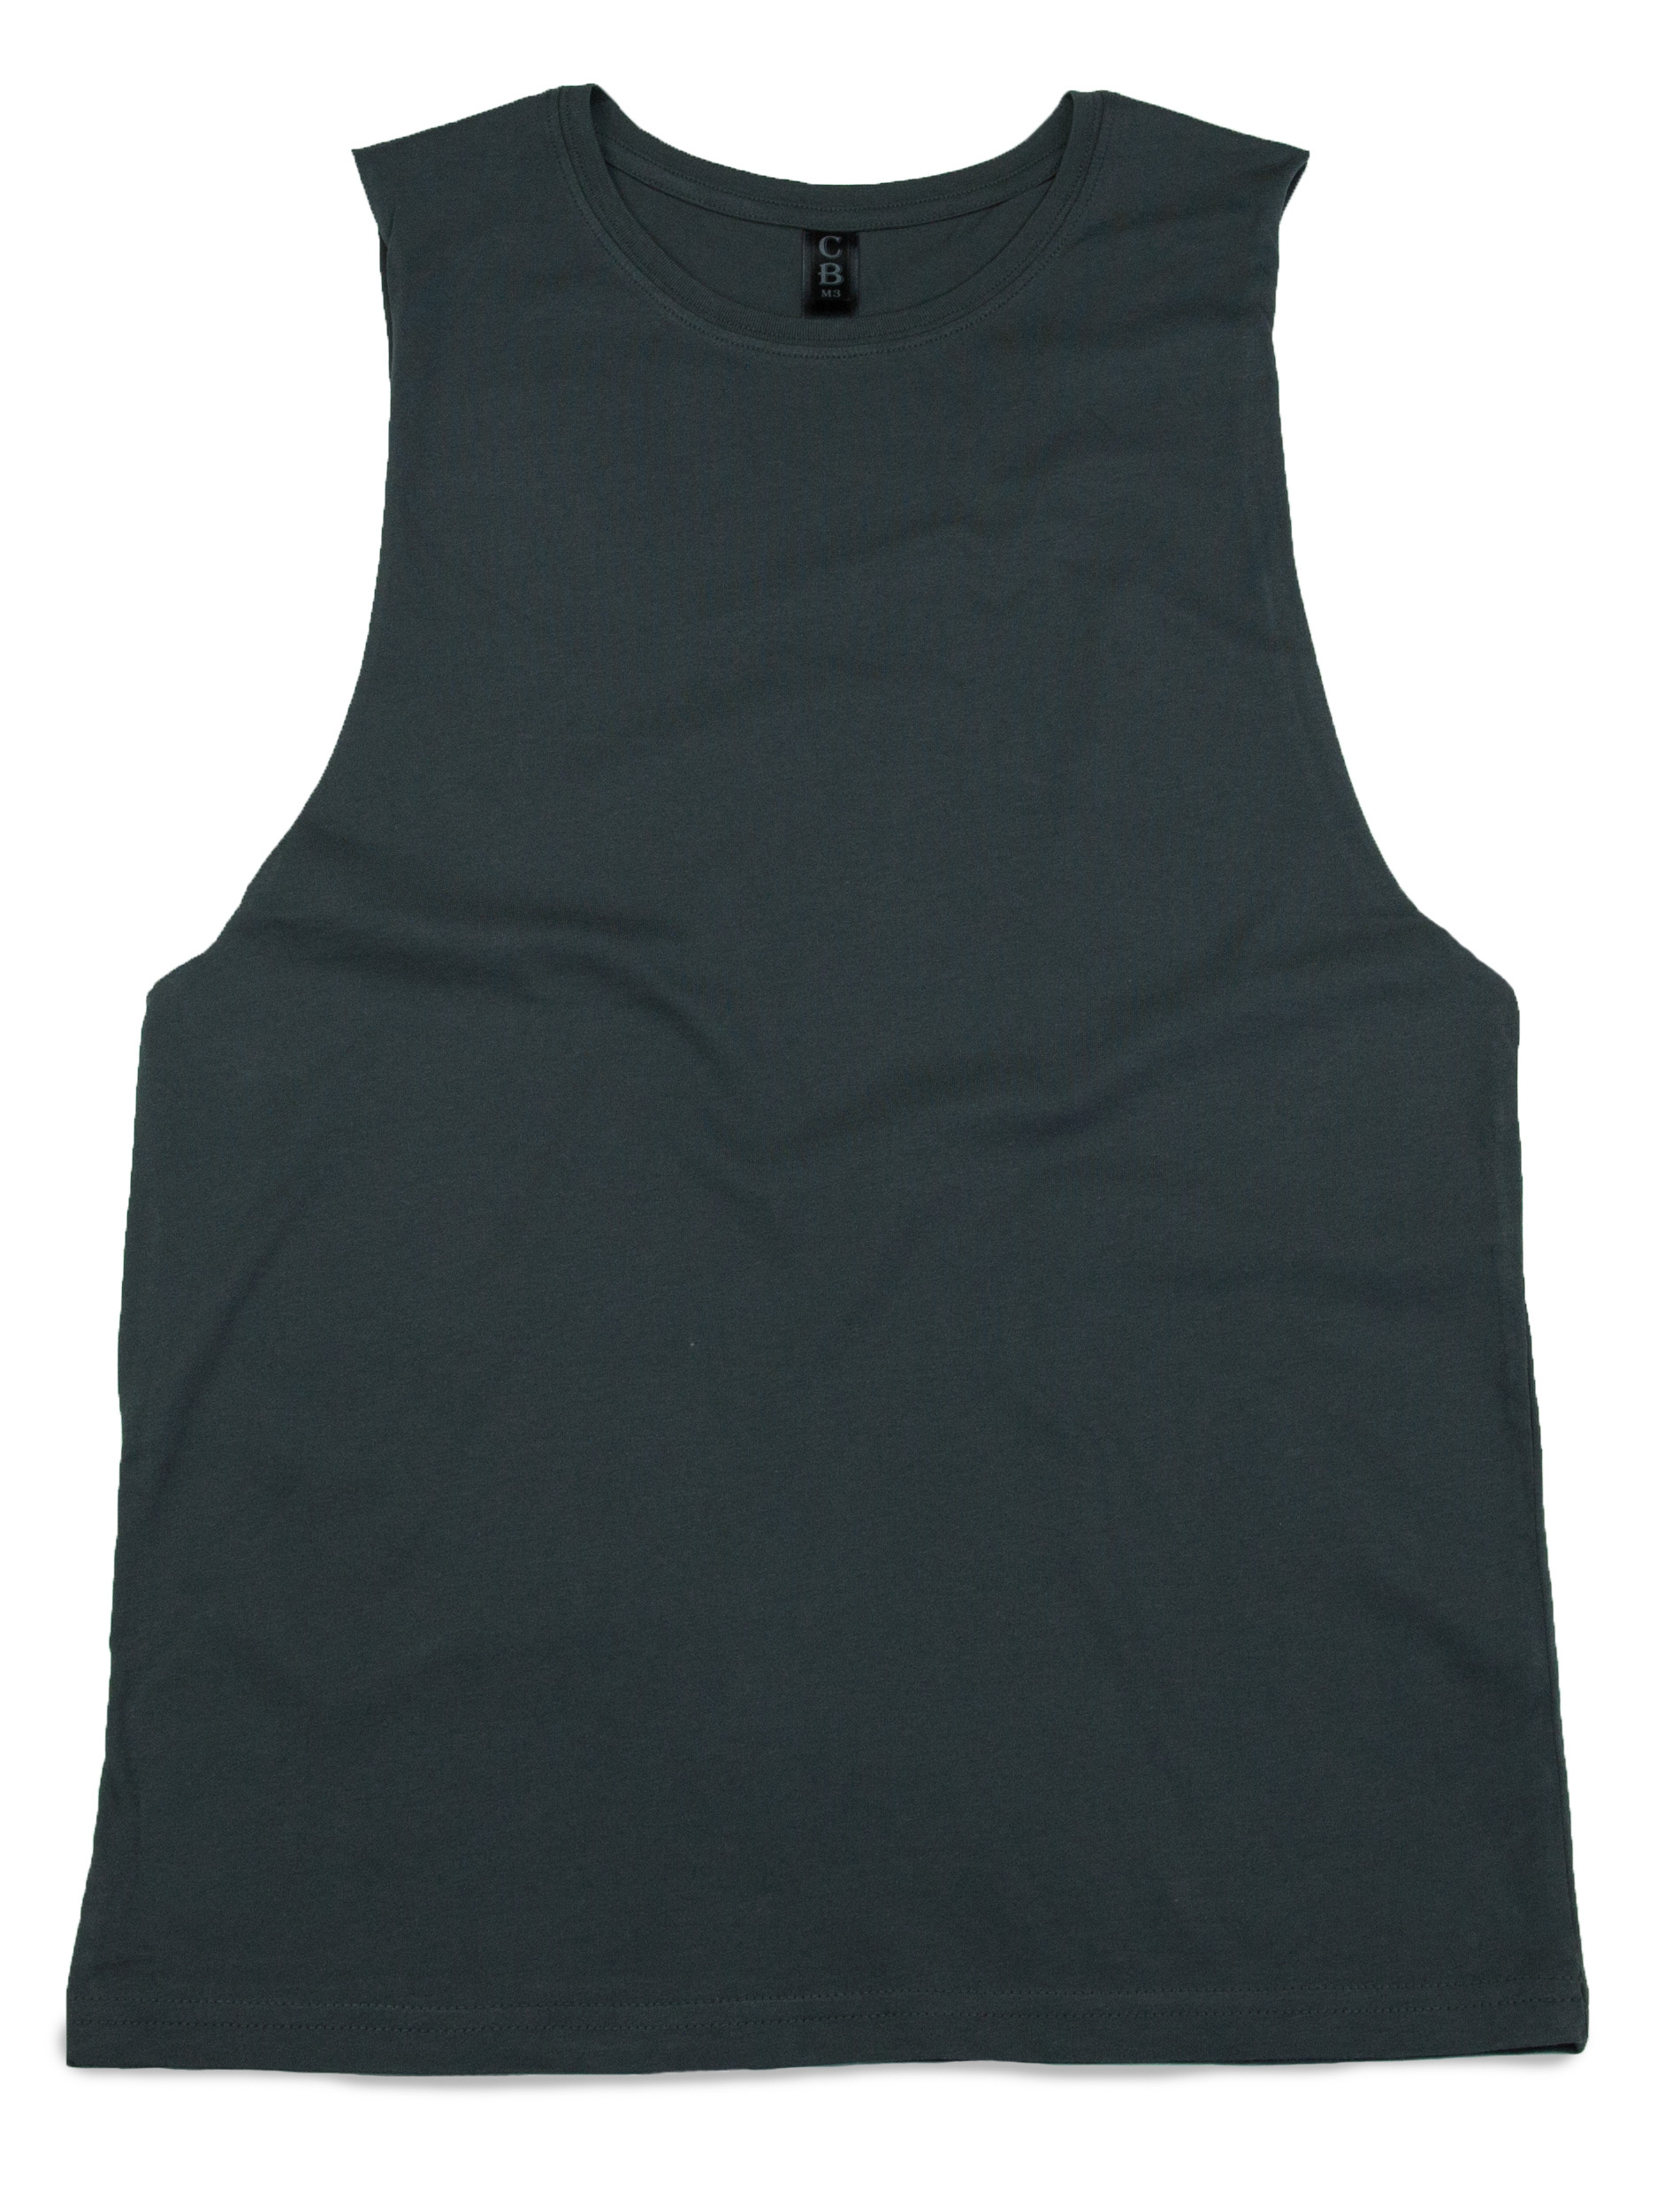 M3 - Mens Muscle Tank